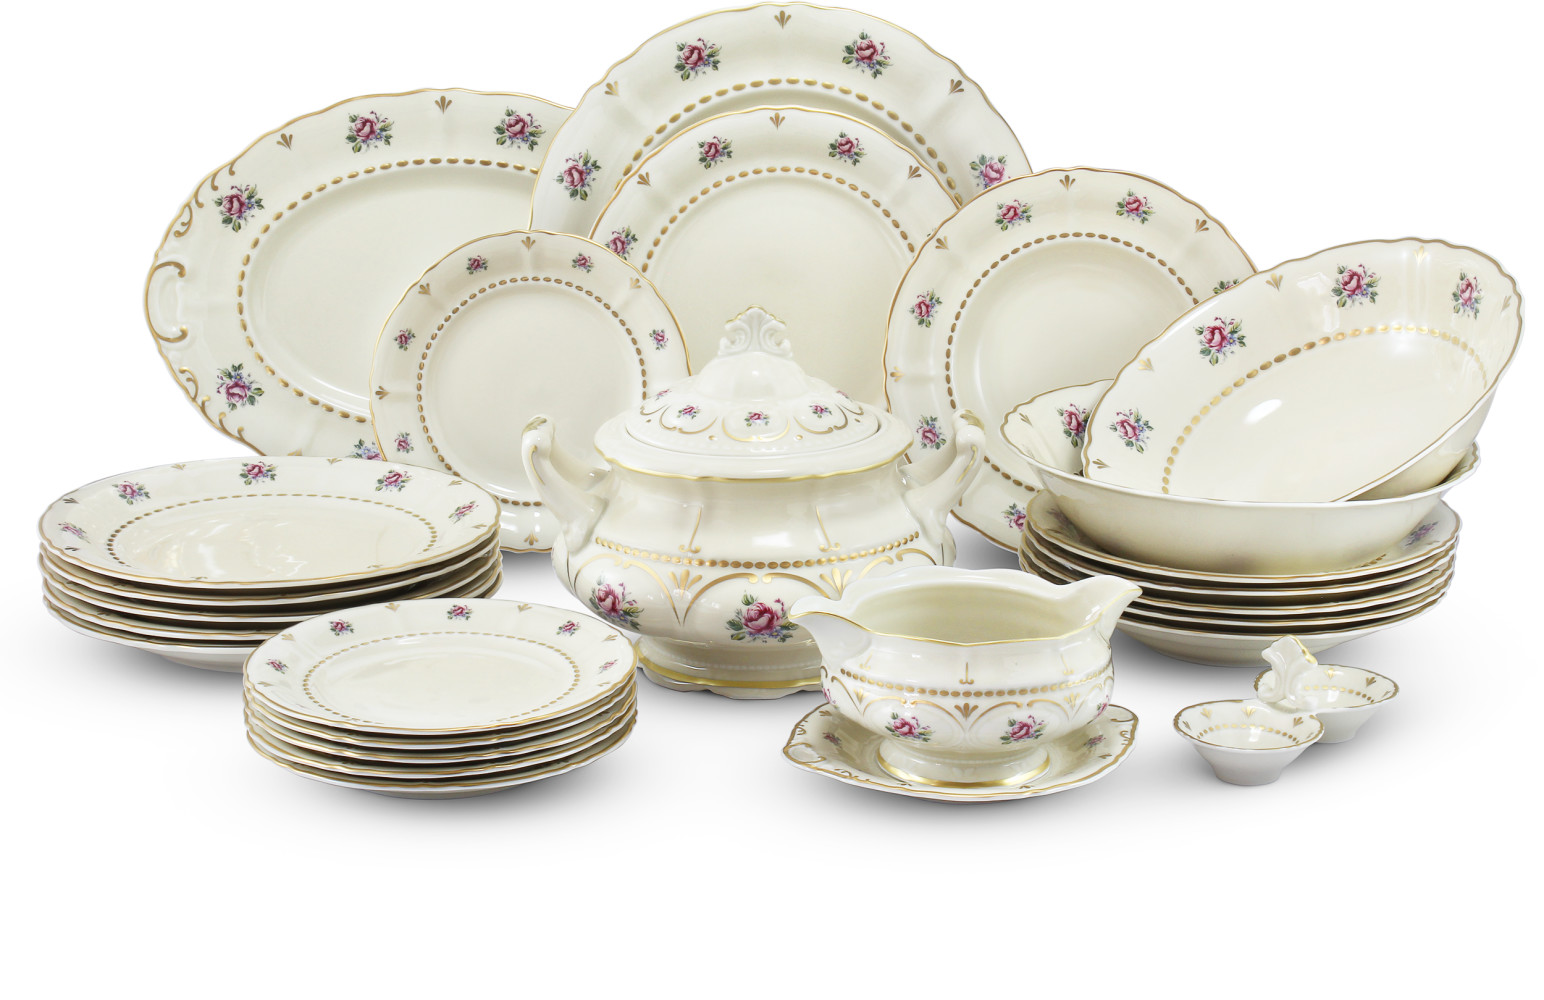 Dining set 25 pieces Bohemian rose ivory